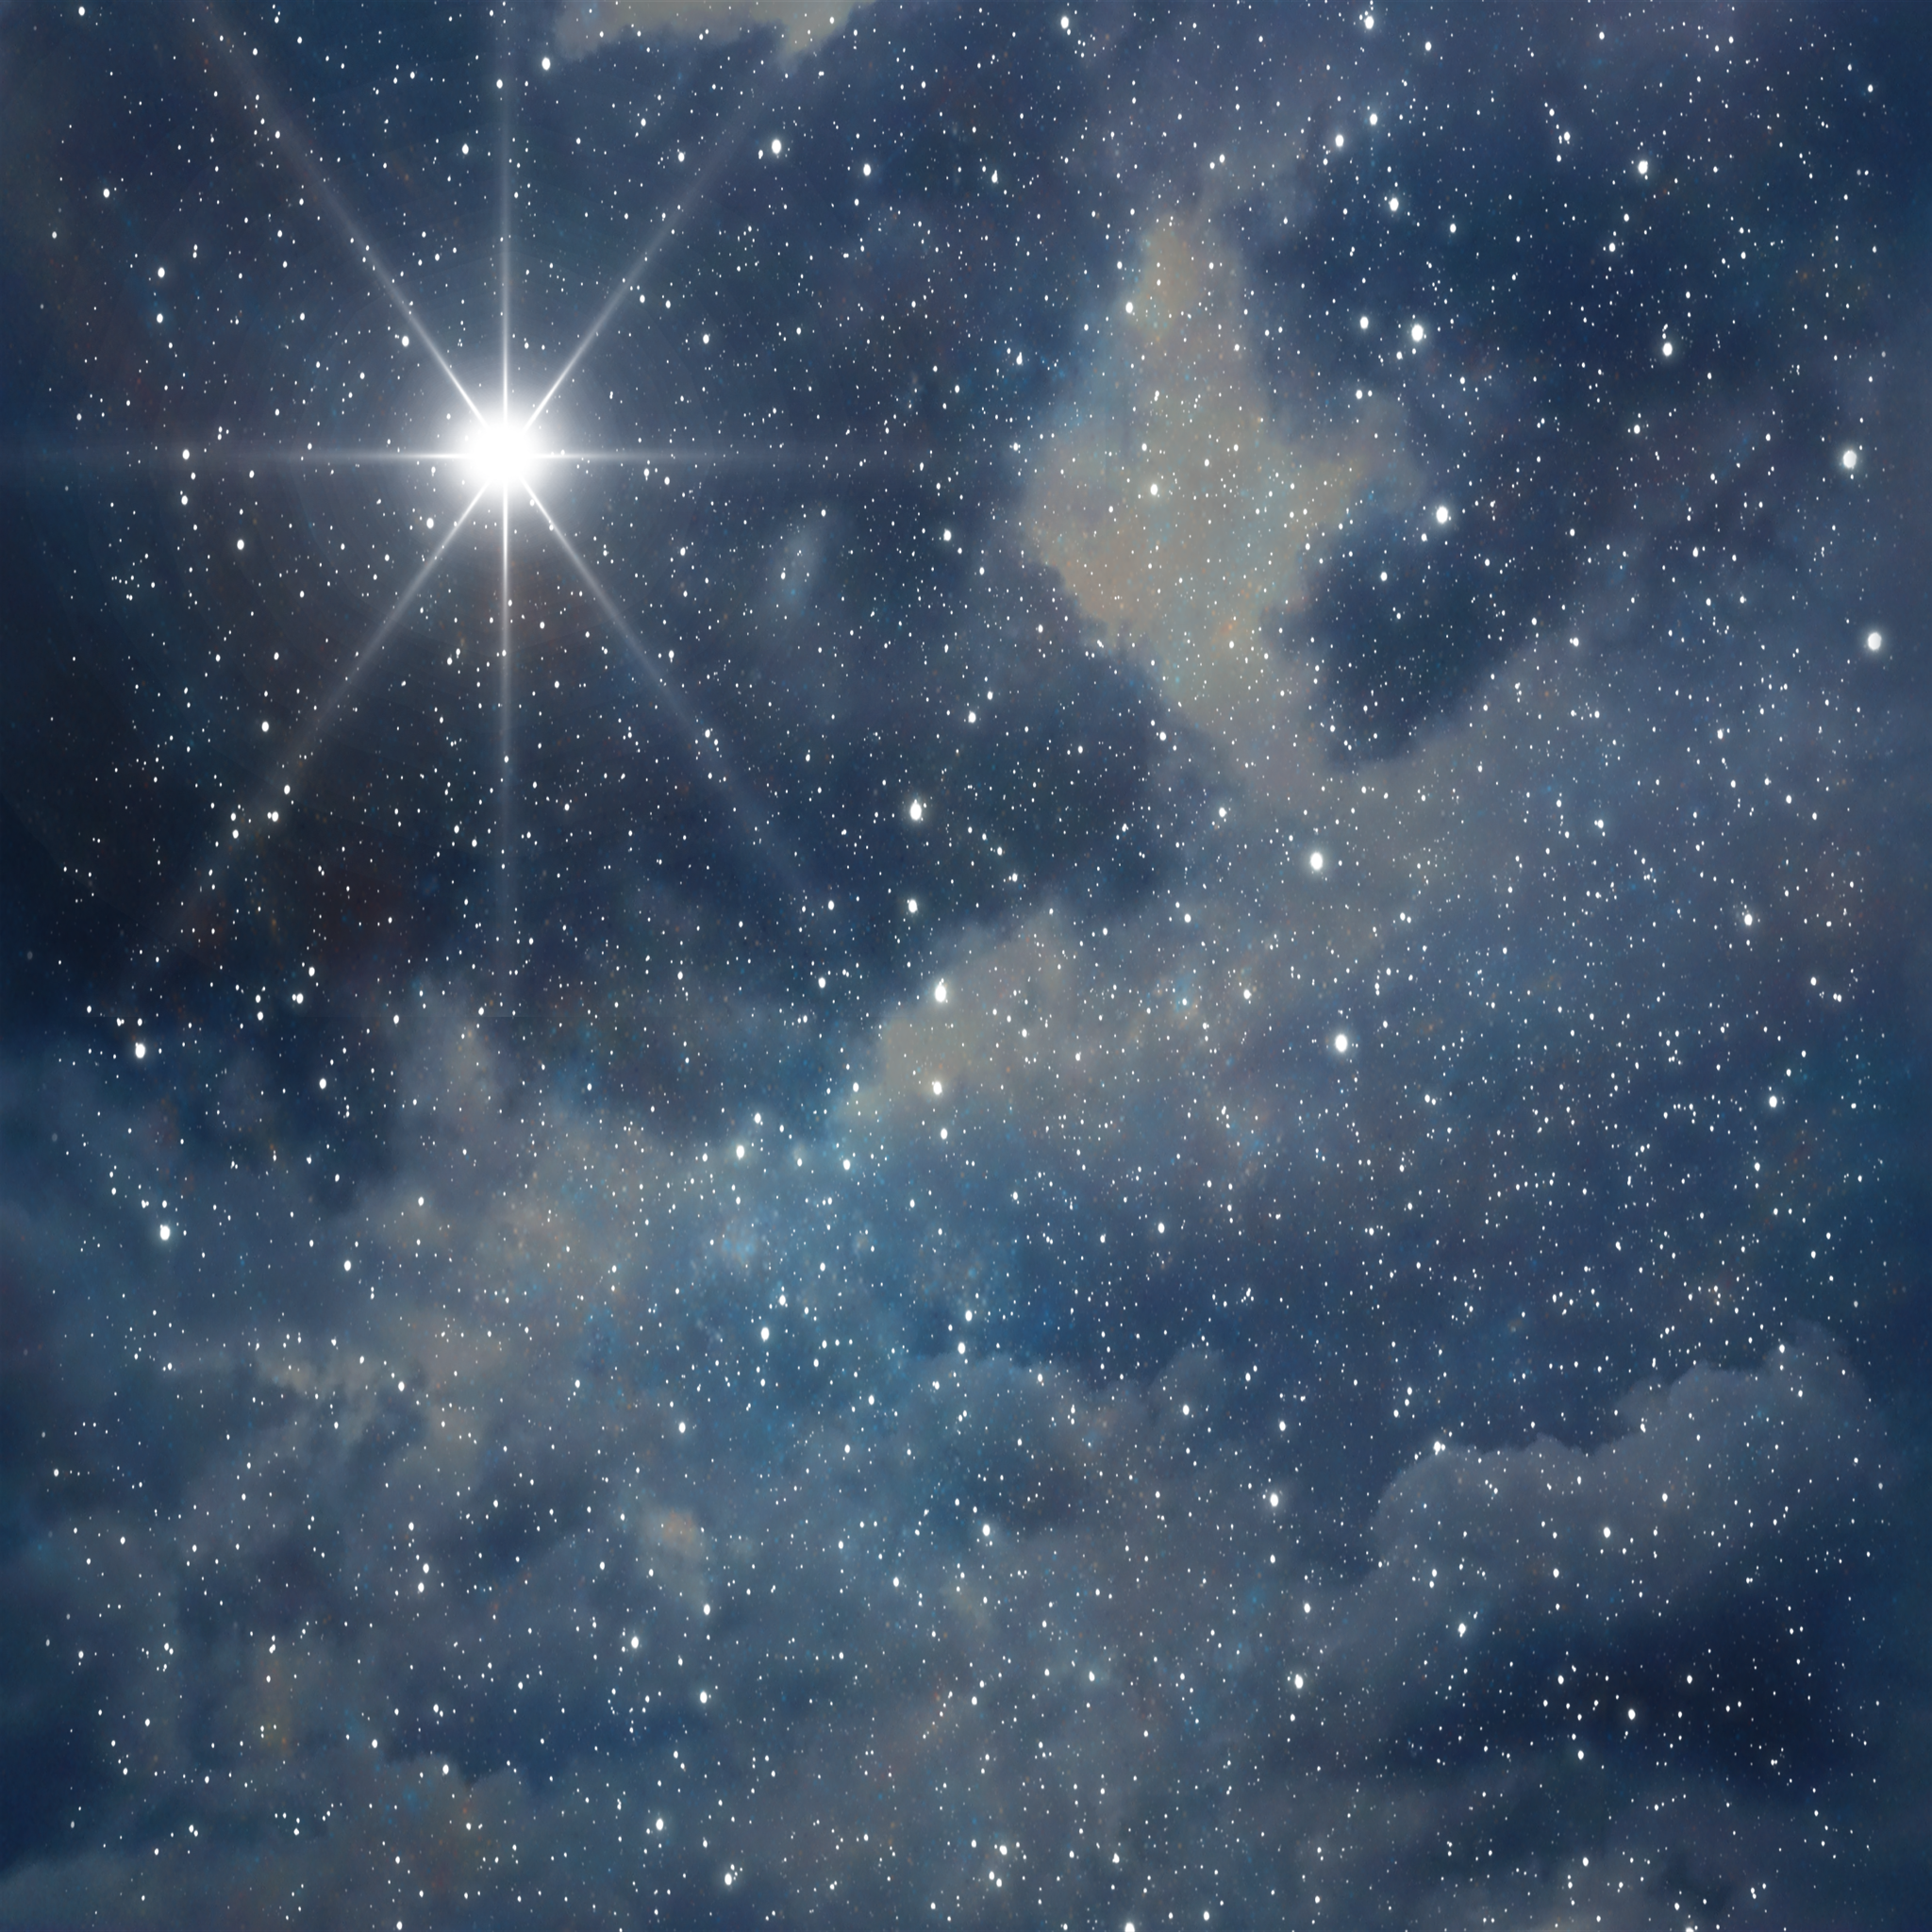 Stars In The Night Sky Tumblr Background night sky by 2048x2048